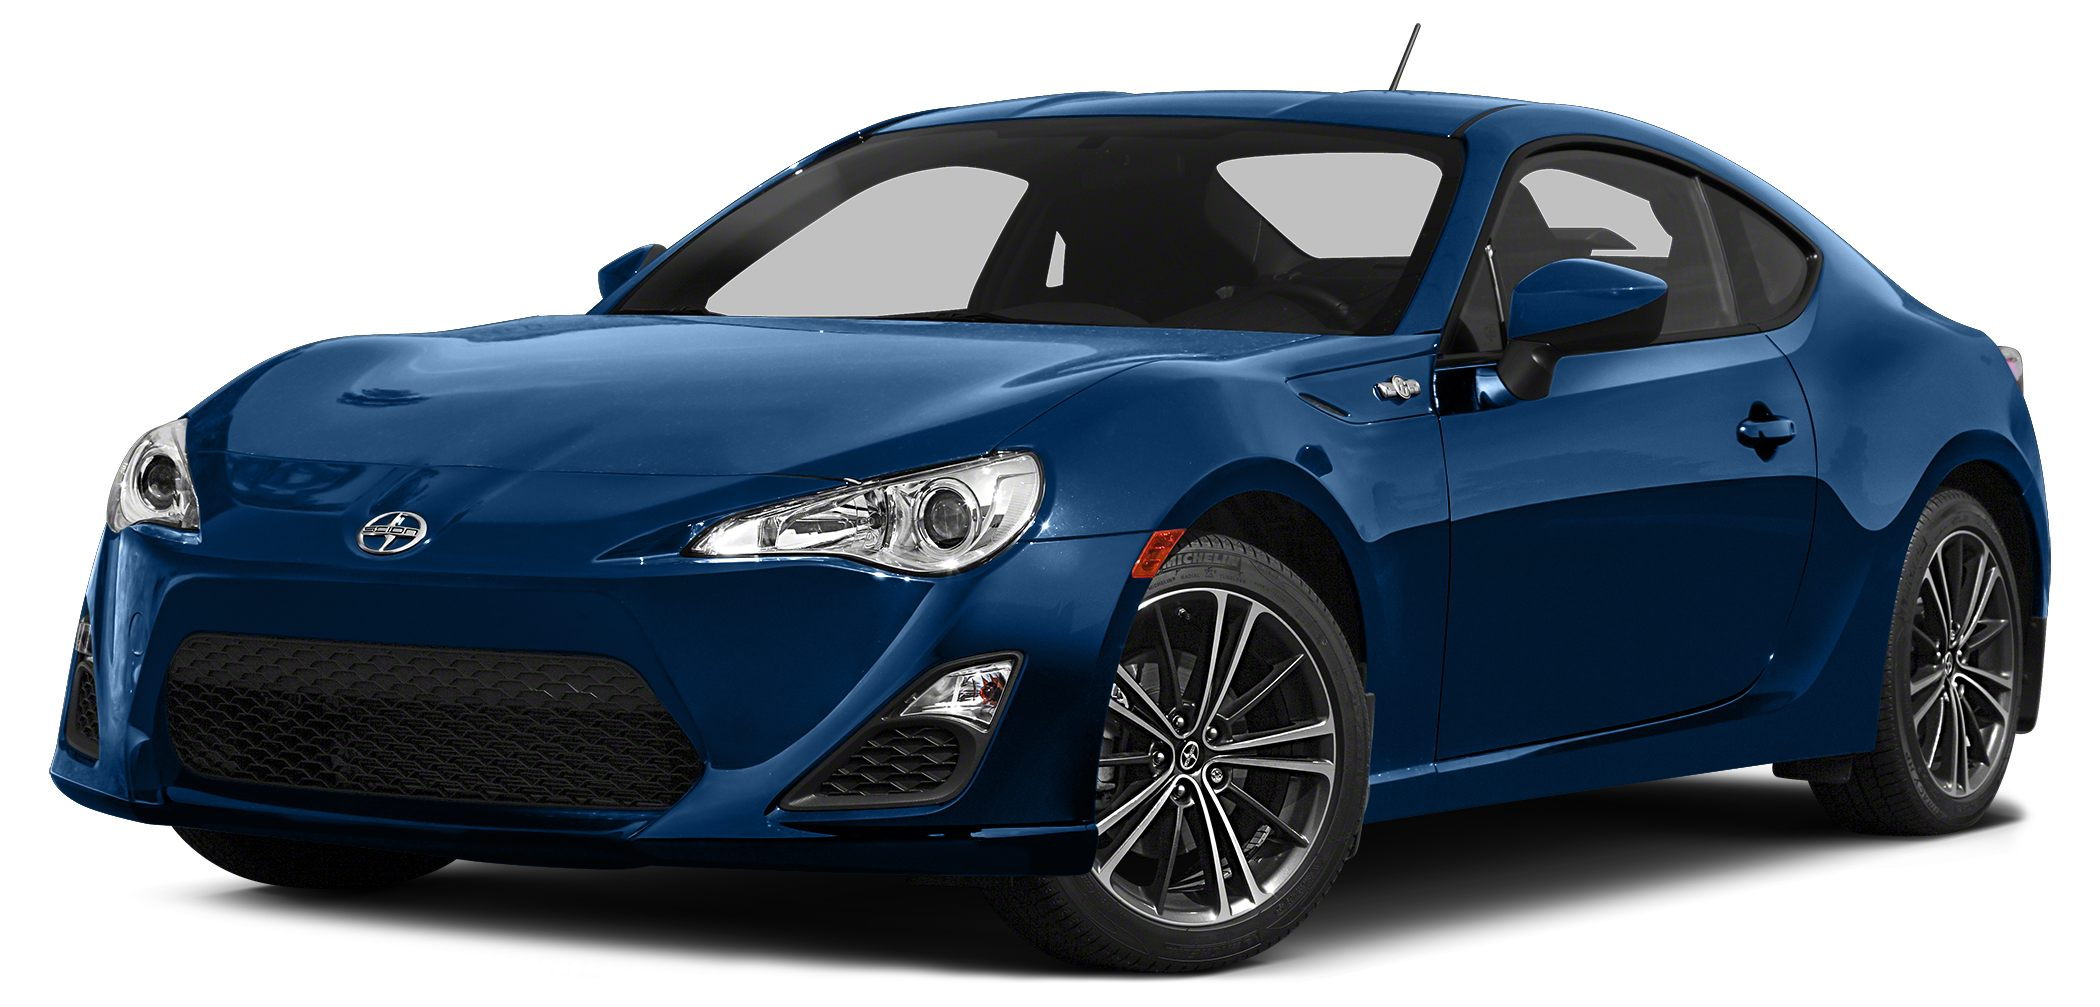 2013 Scion FR-S  Proudly serving manatee county for over 60 years offering Cars Trucks SUVs Mi